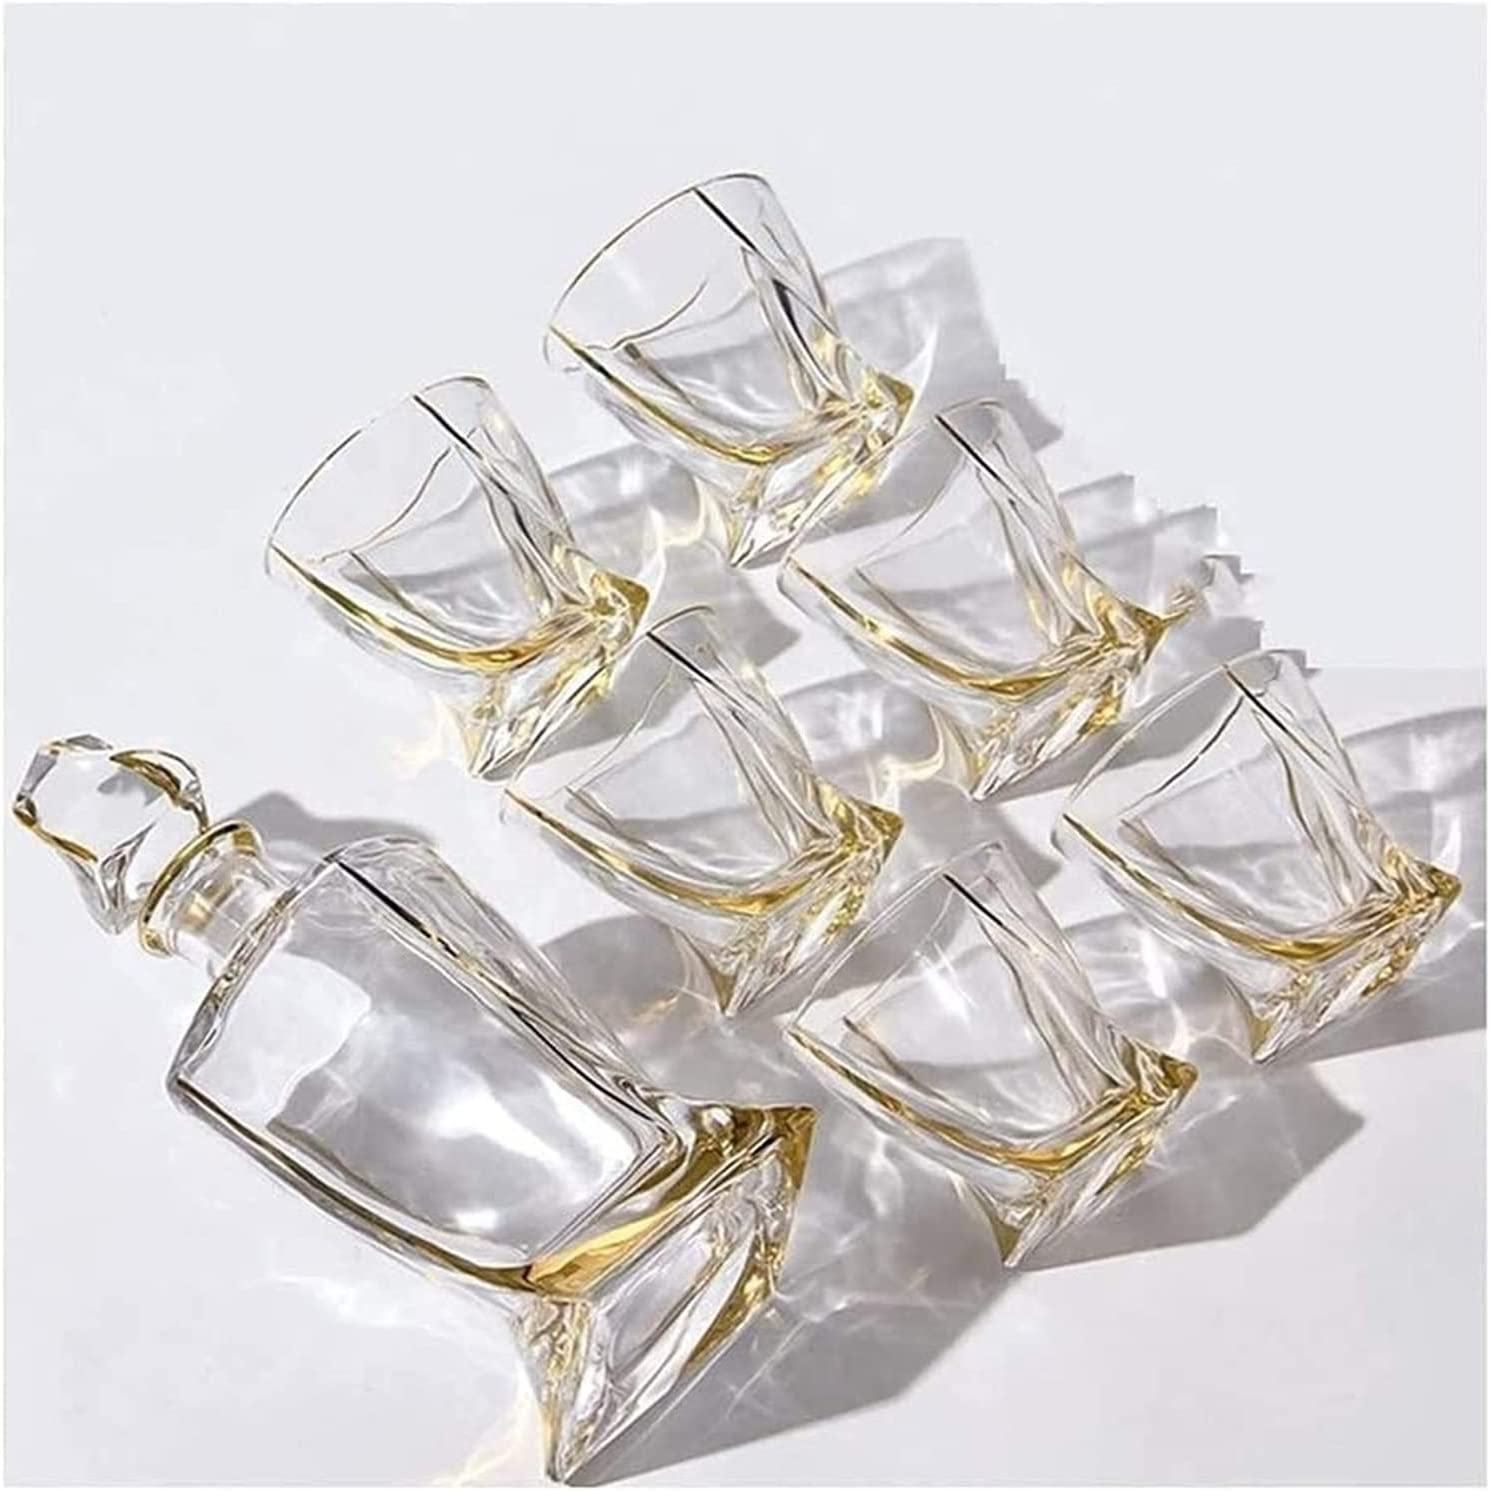 Home bar accessories Whiskey Whisky Wine Discount mail order Choice Decan Decanter